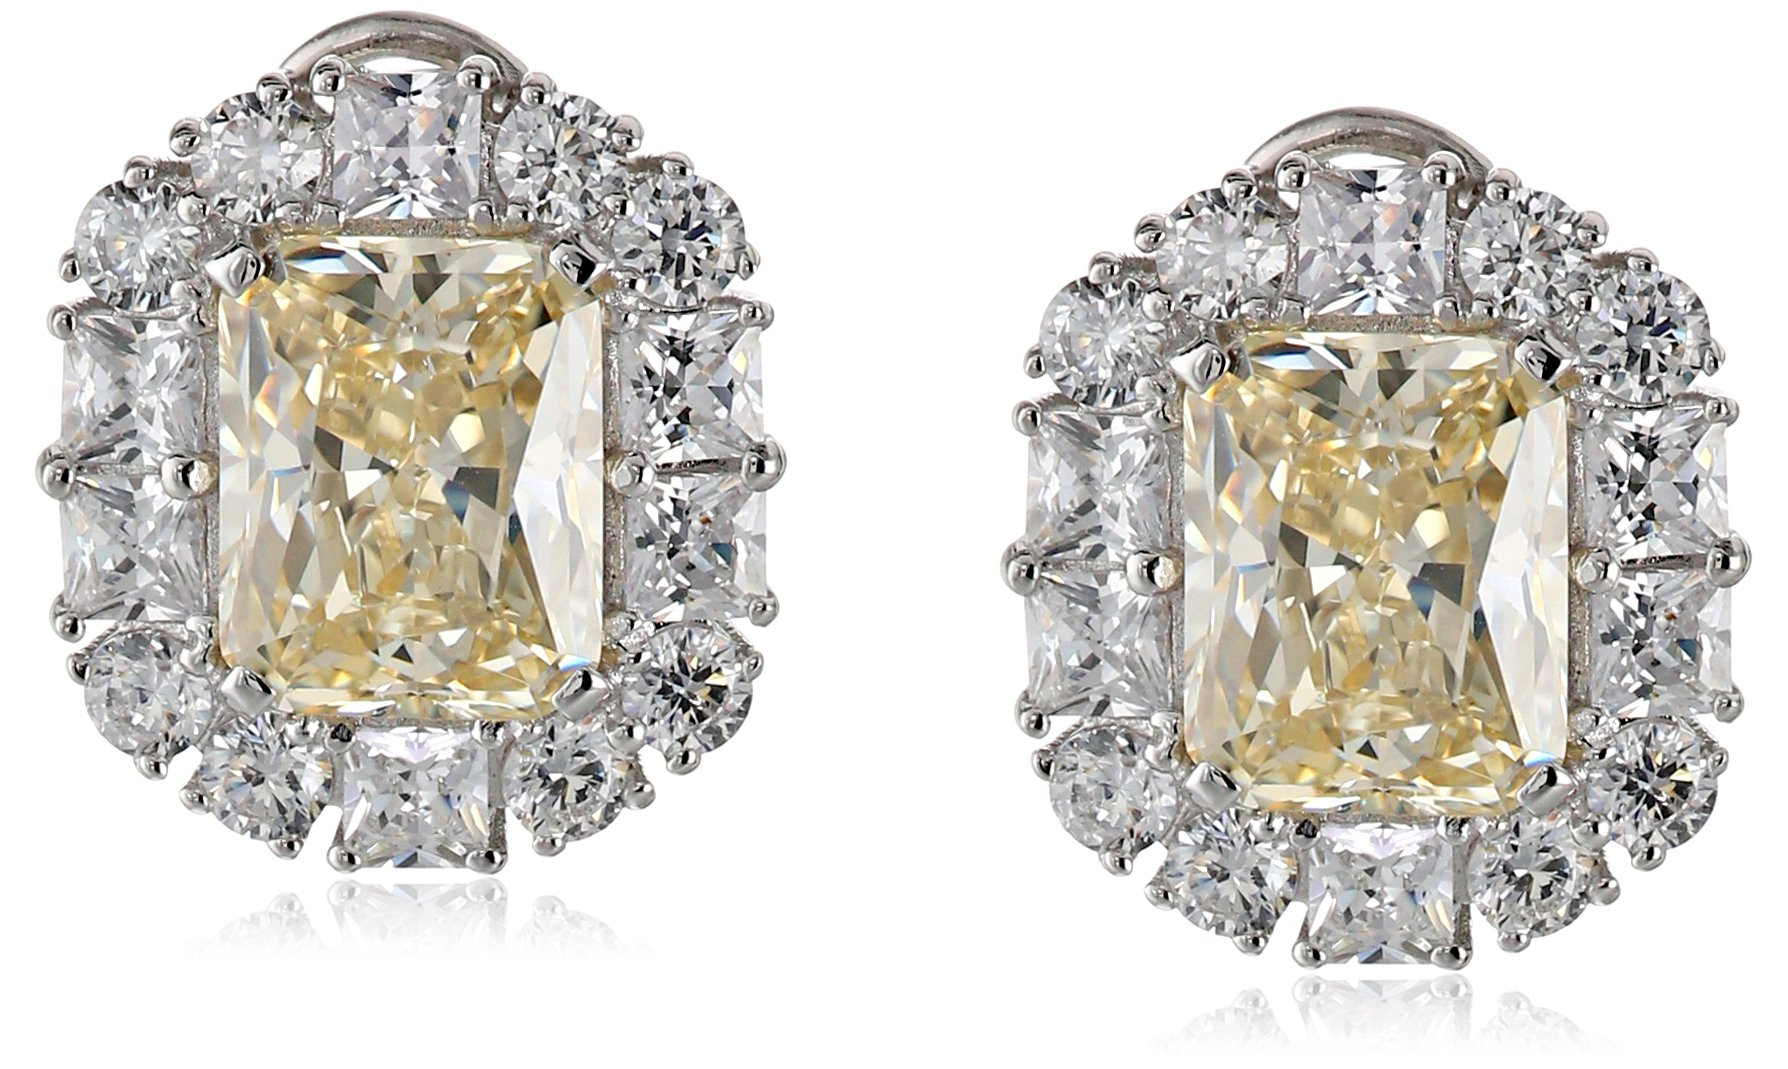 Charles Winston, S Silver, Yellow & White Cubic Zirconia, Elegant  Earrings, 7.50 ct. tw.